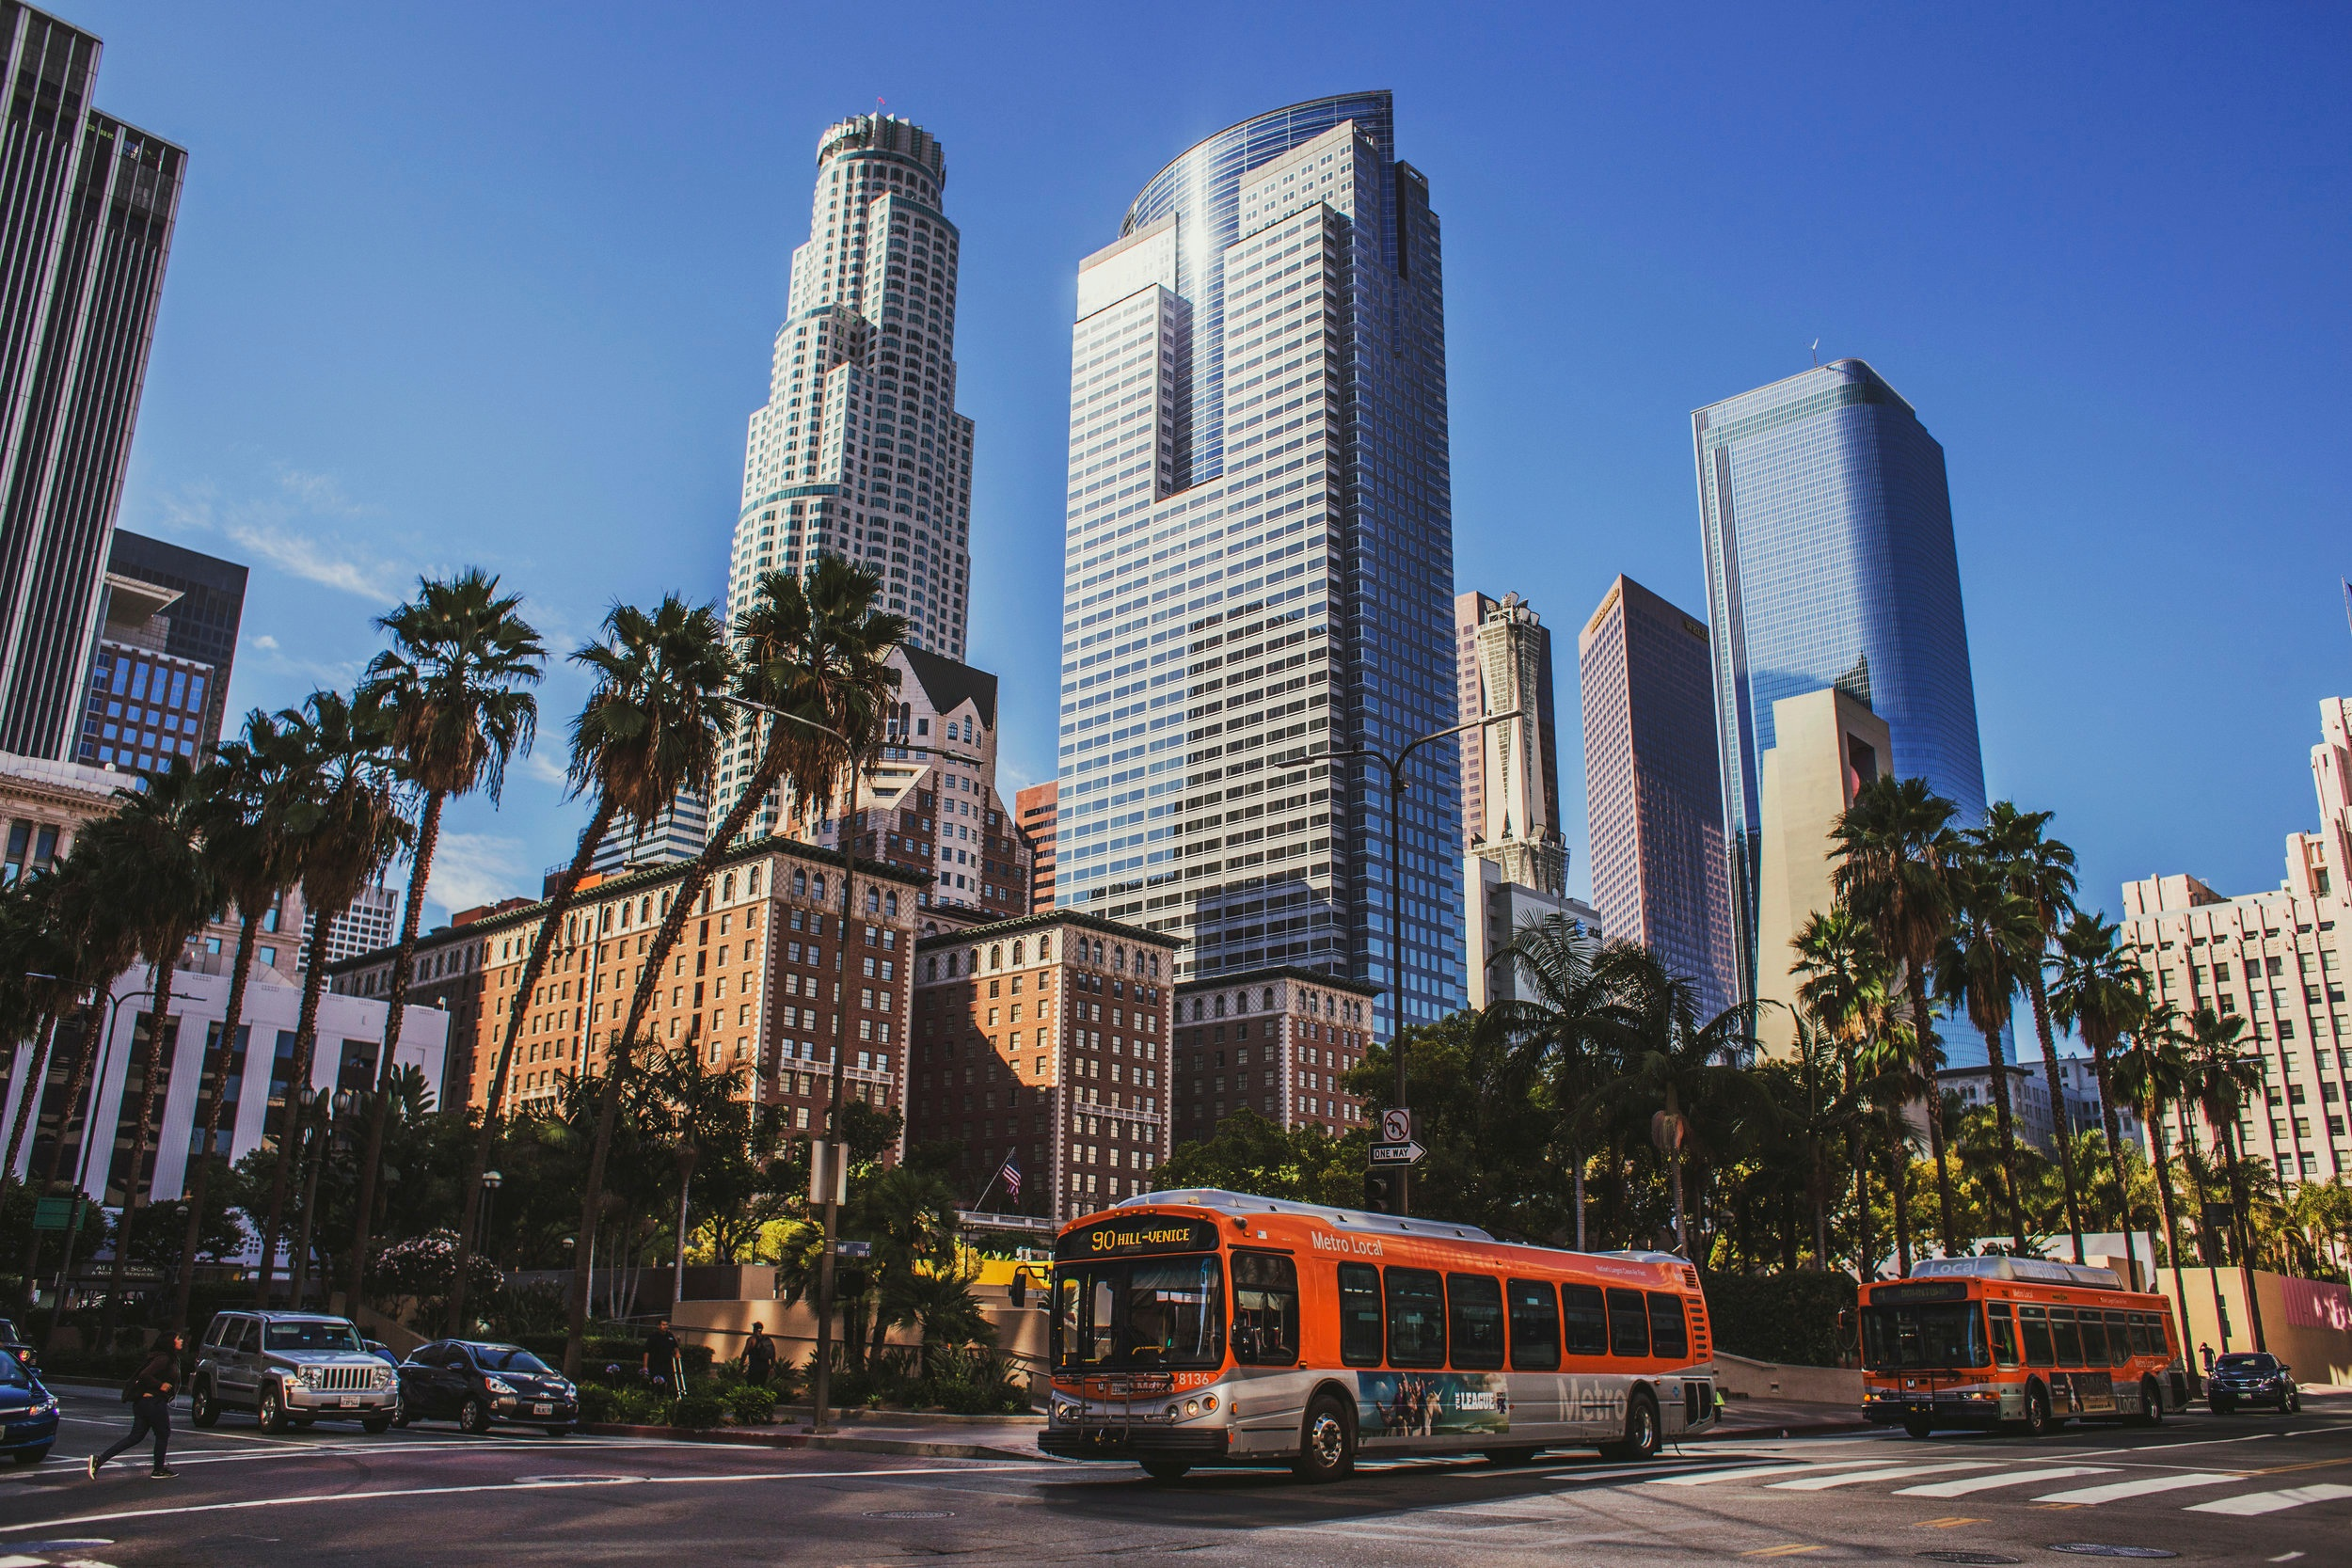 Los Angeles - Live where the rest of the country vacations. Don't miss out on the opportunity to live and invest in this millennial hot spot.